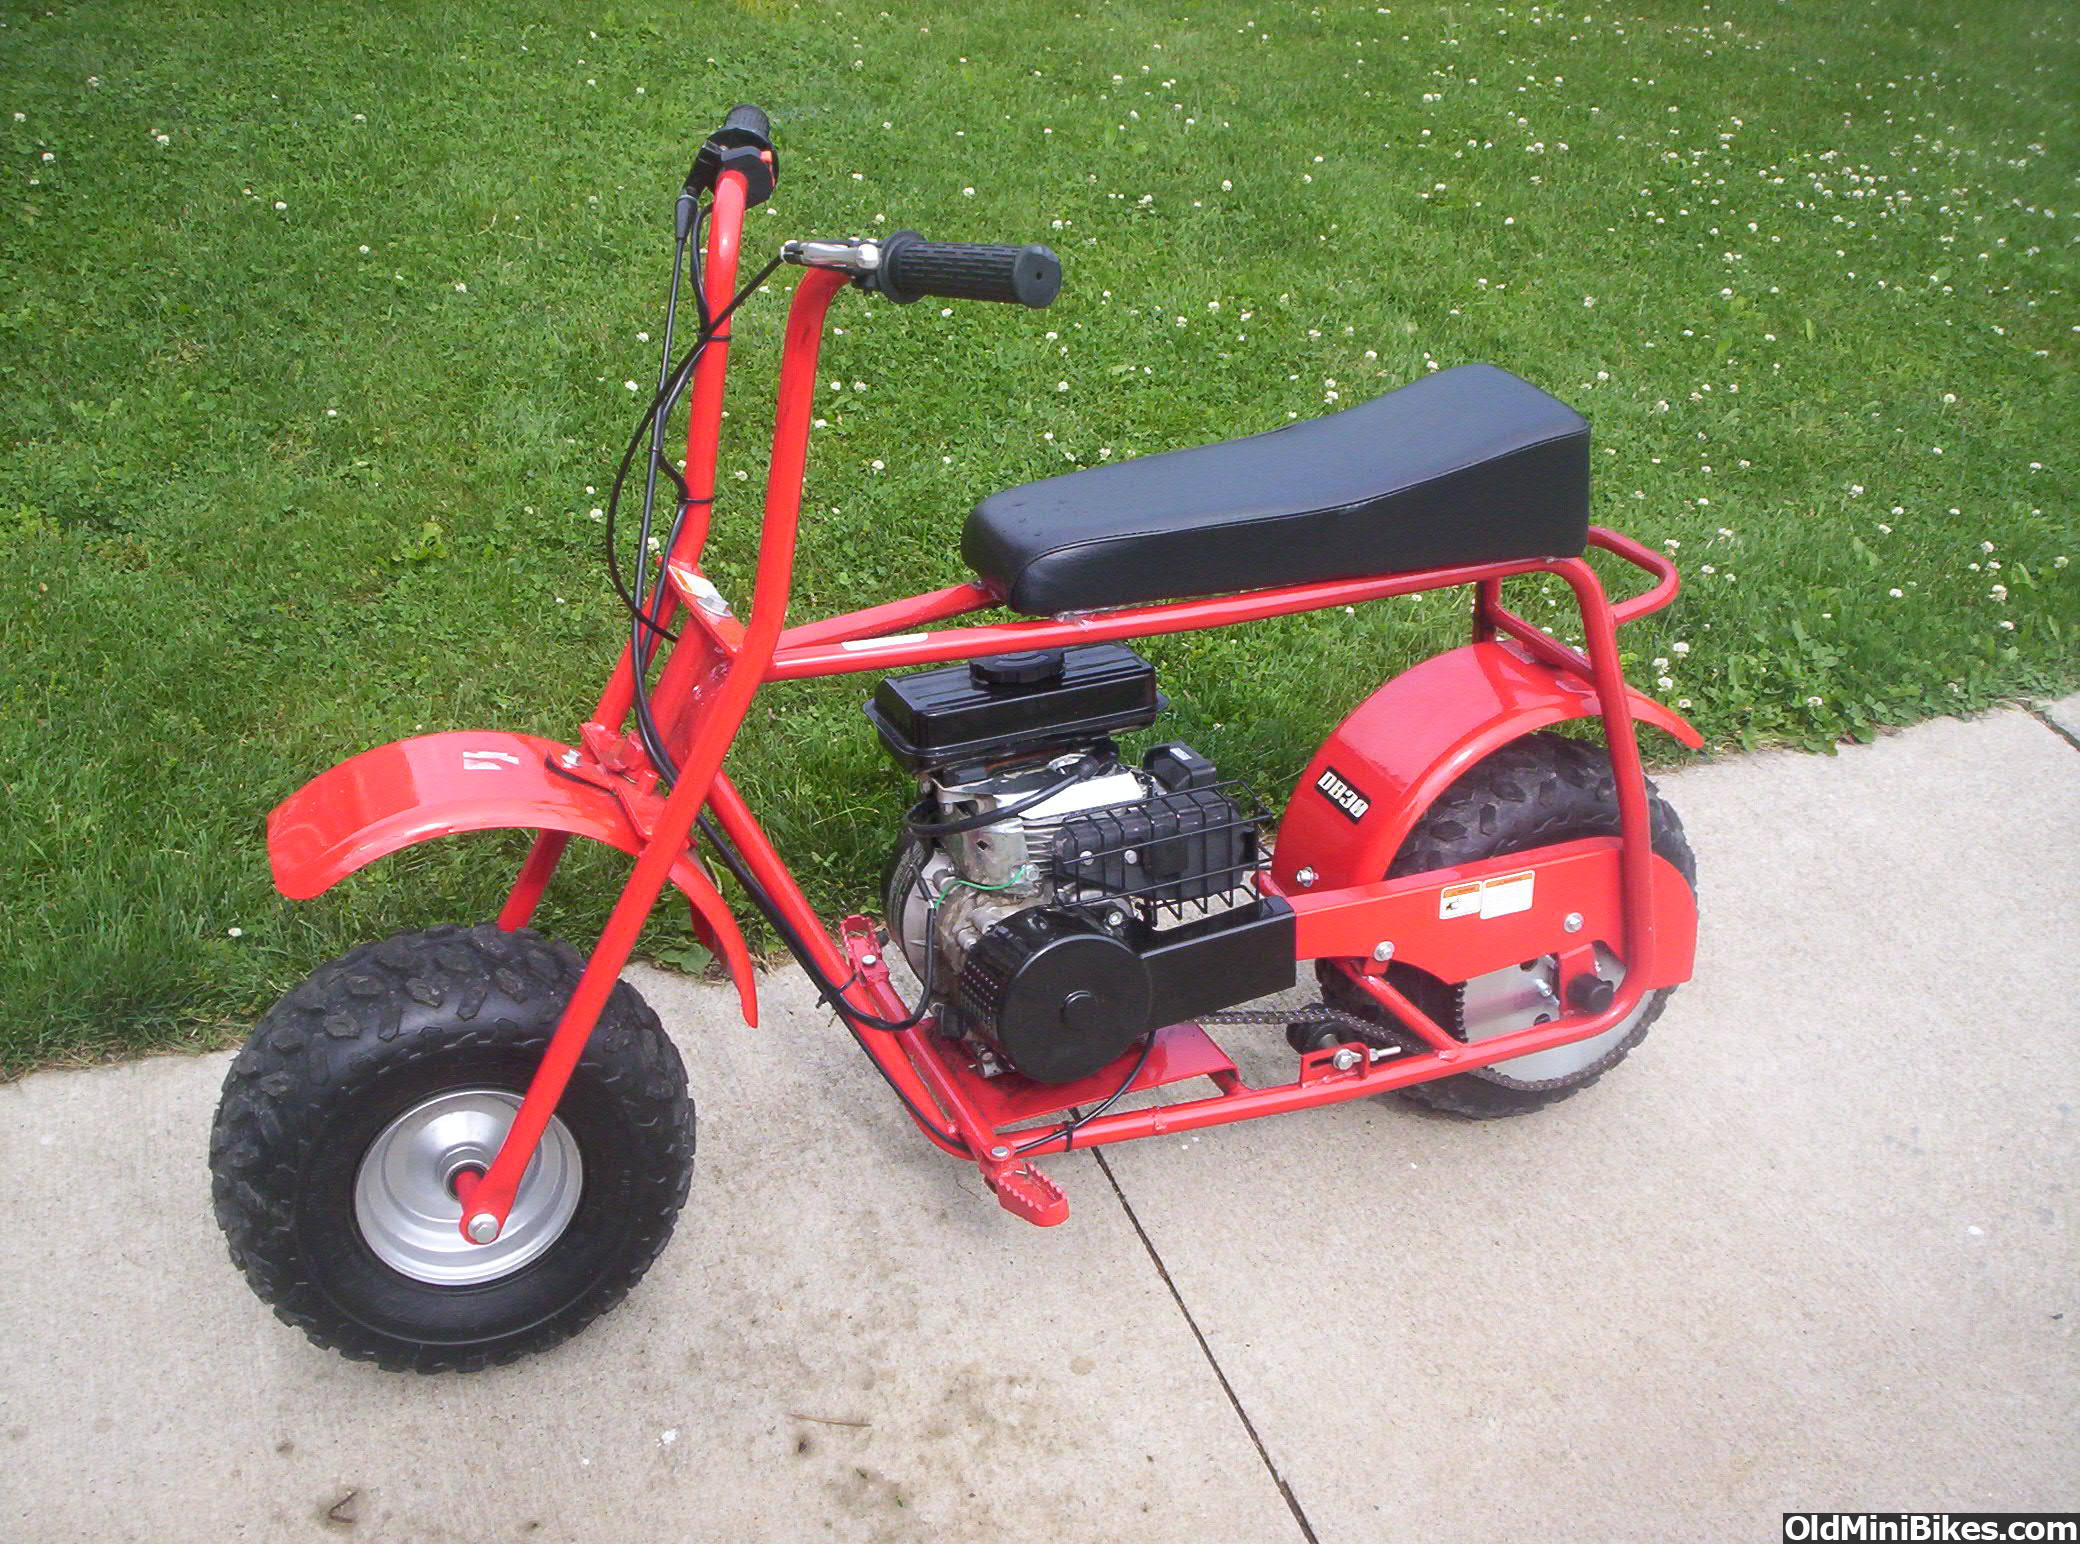 Craigslist General Fresno >> Craigslist Mini Bike What Is It | Motorcycle Review and ...